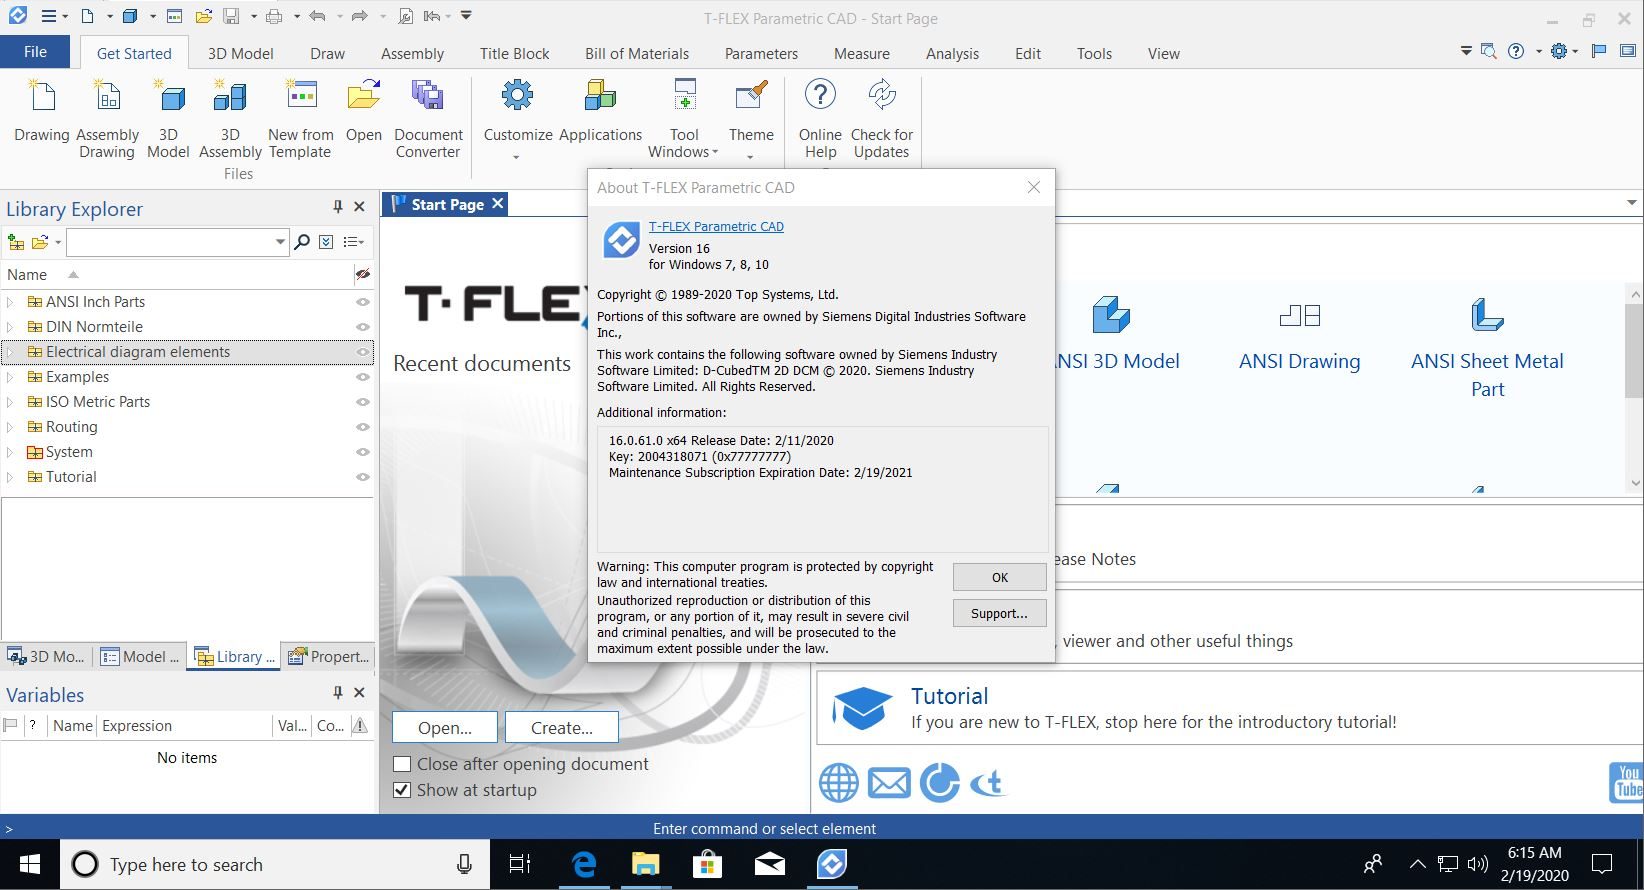 Working with T-FLEX Parametric CAD 16 full license